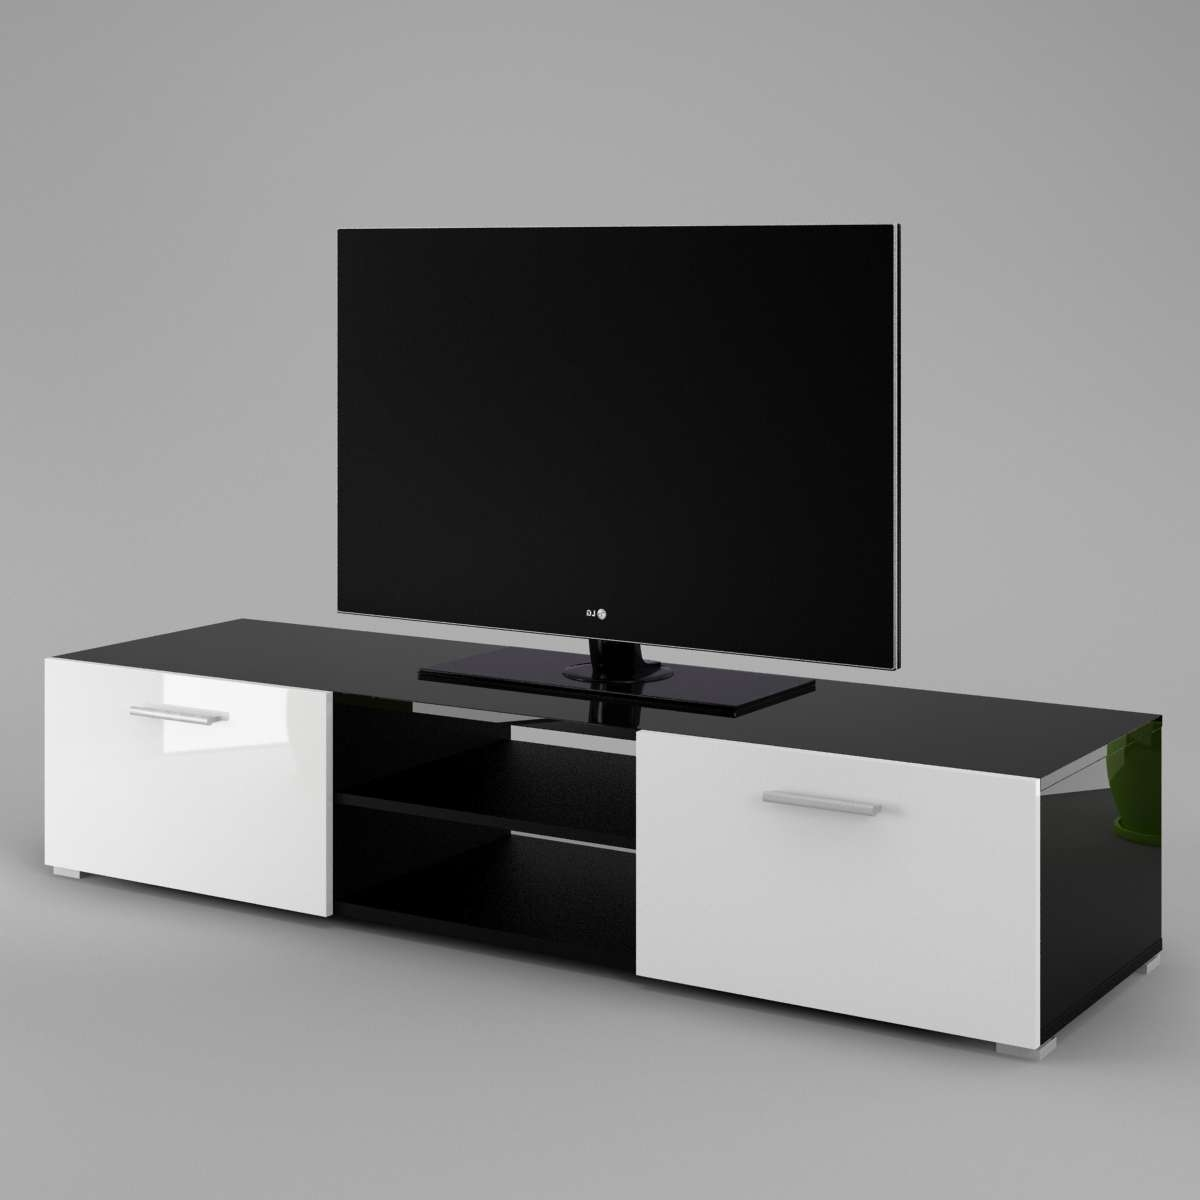 Tv Cabinet Luna – Labi Furniturelabi Furniture Pertaining To High Gloss Tv Cabinets (View 17 of 20)